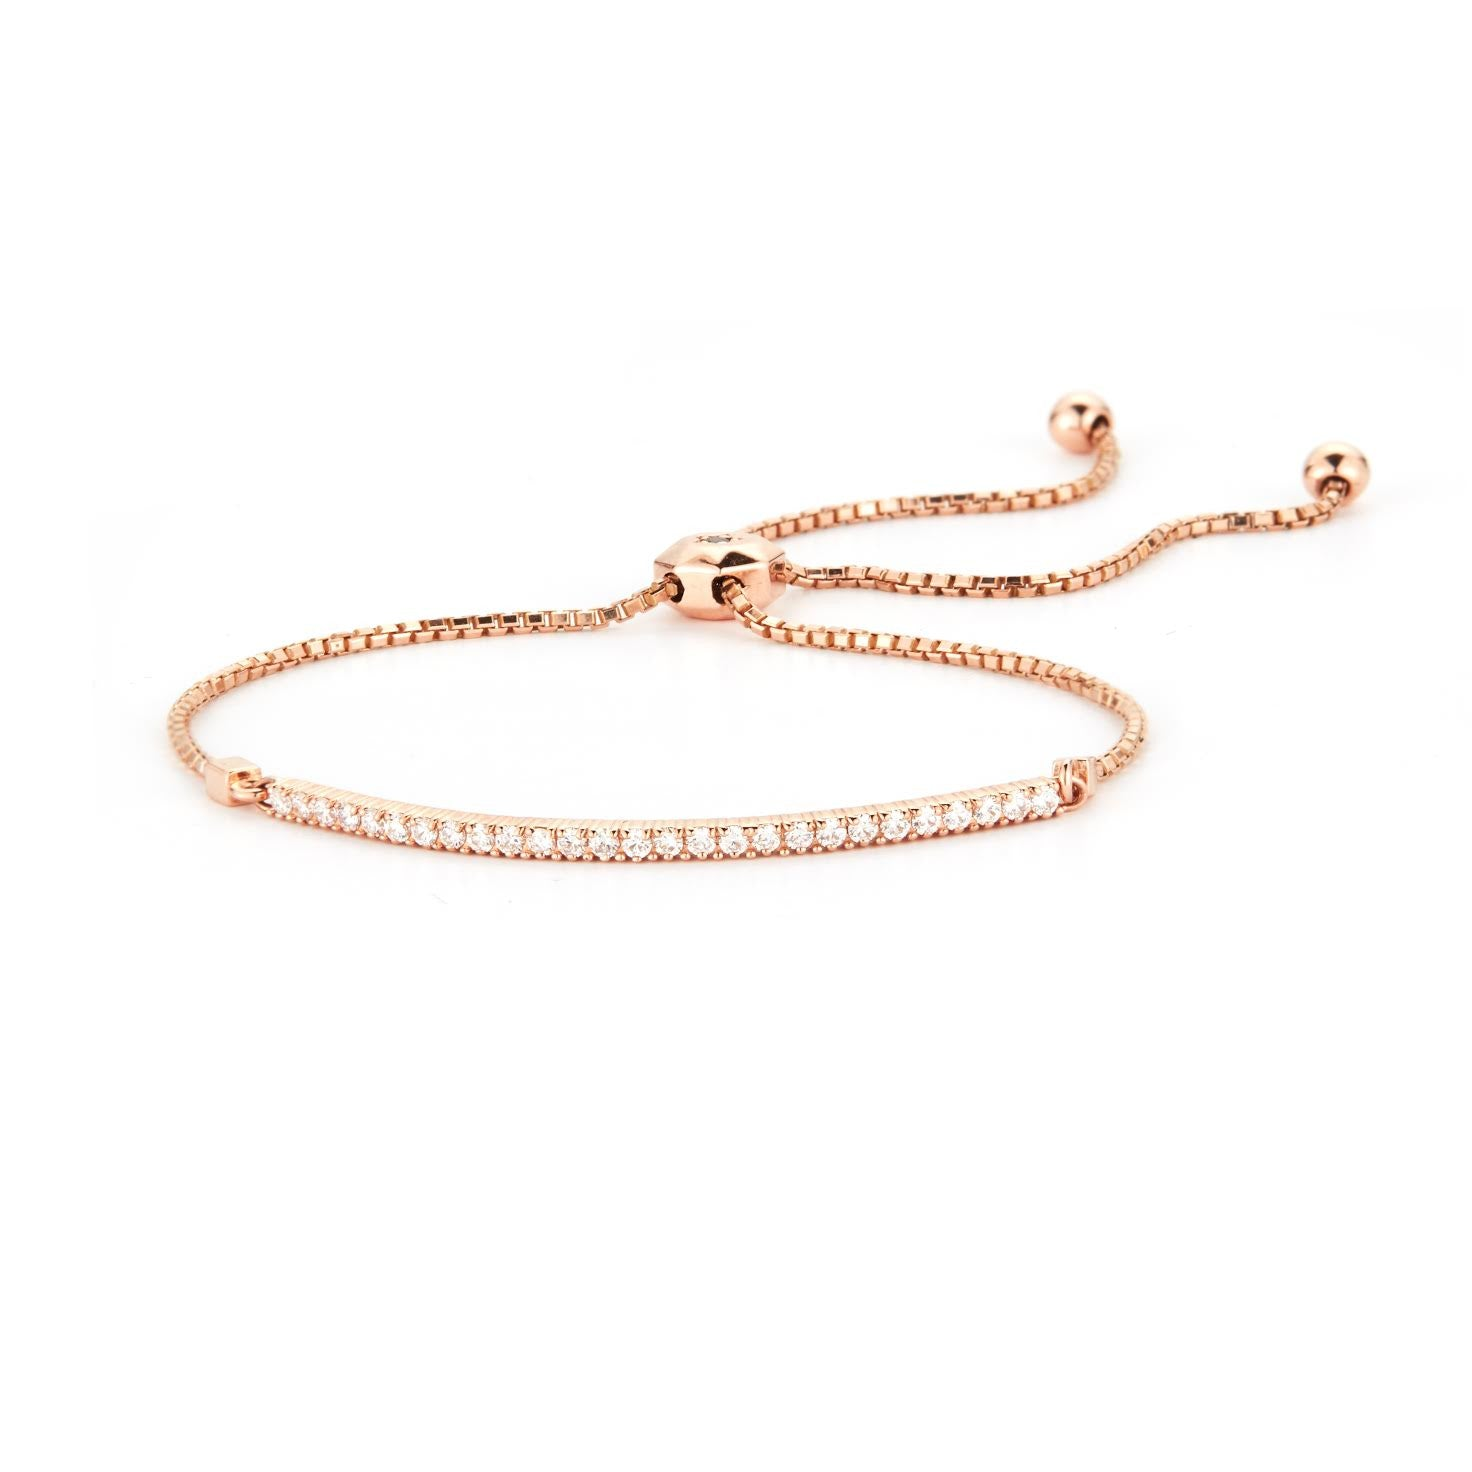 online plated jewelry in for the prices store gold anklet amazon women at green dp jewellery india anklets chain luxor fine red low buy metal